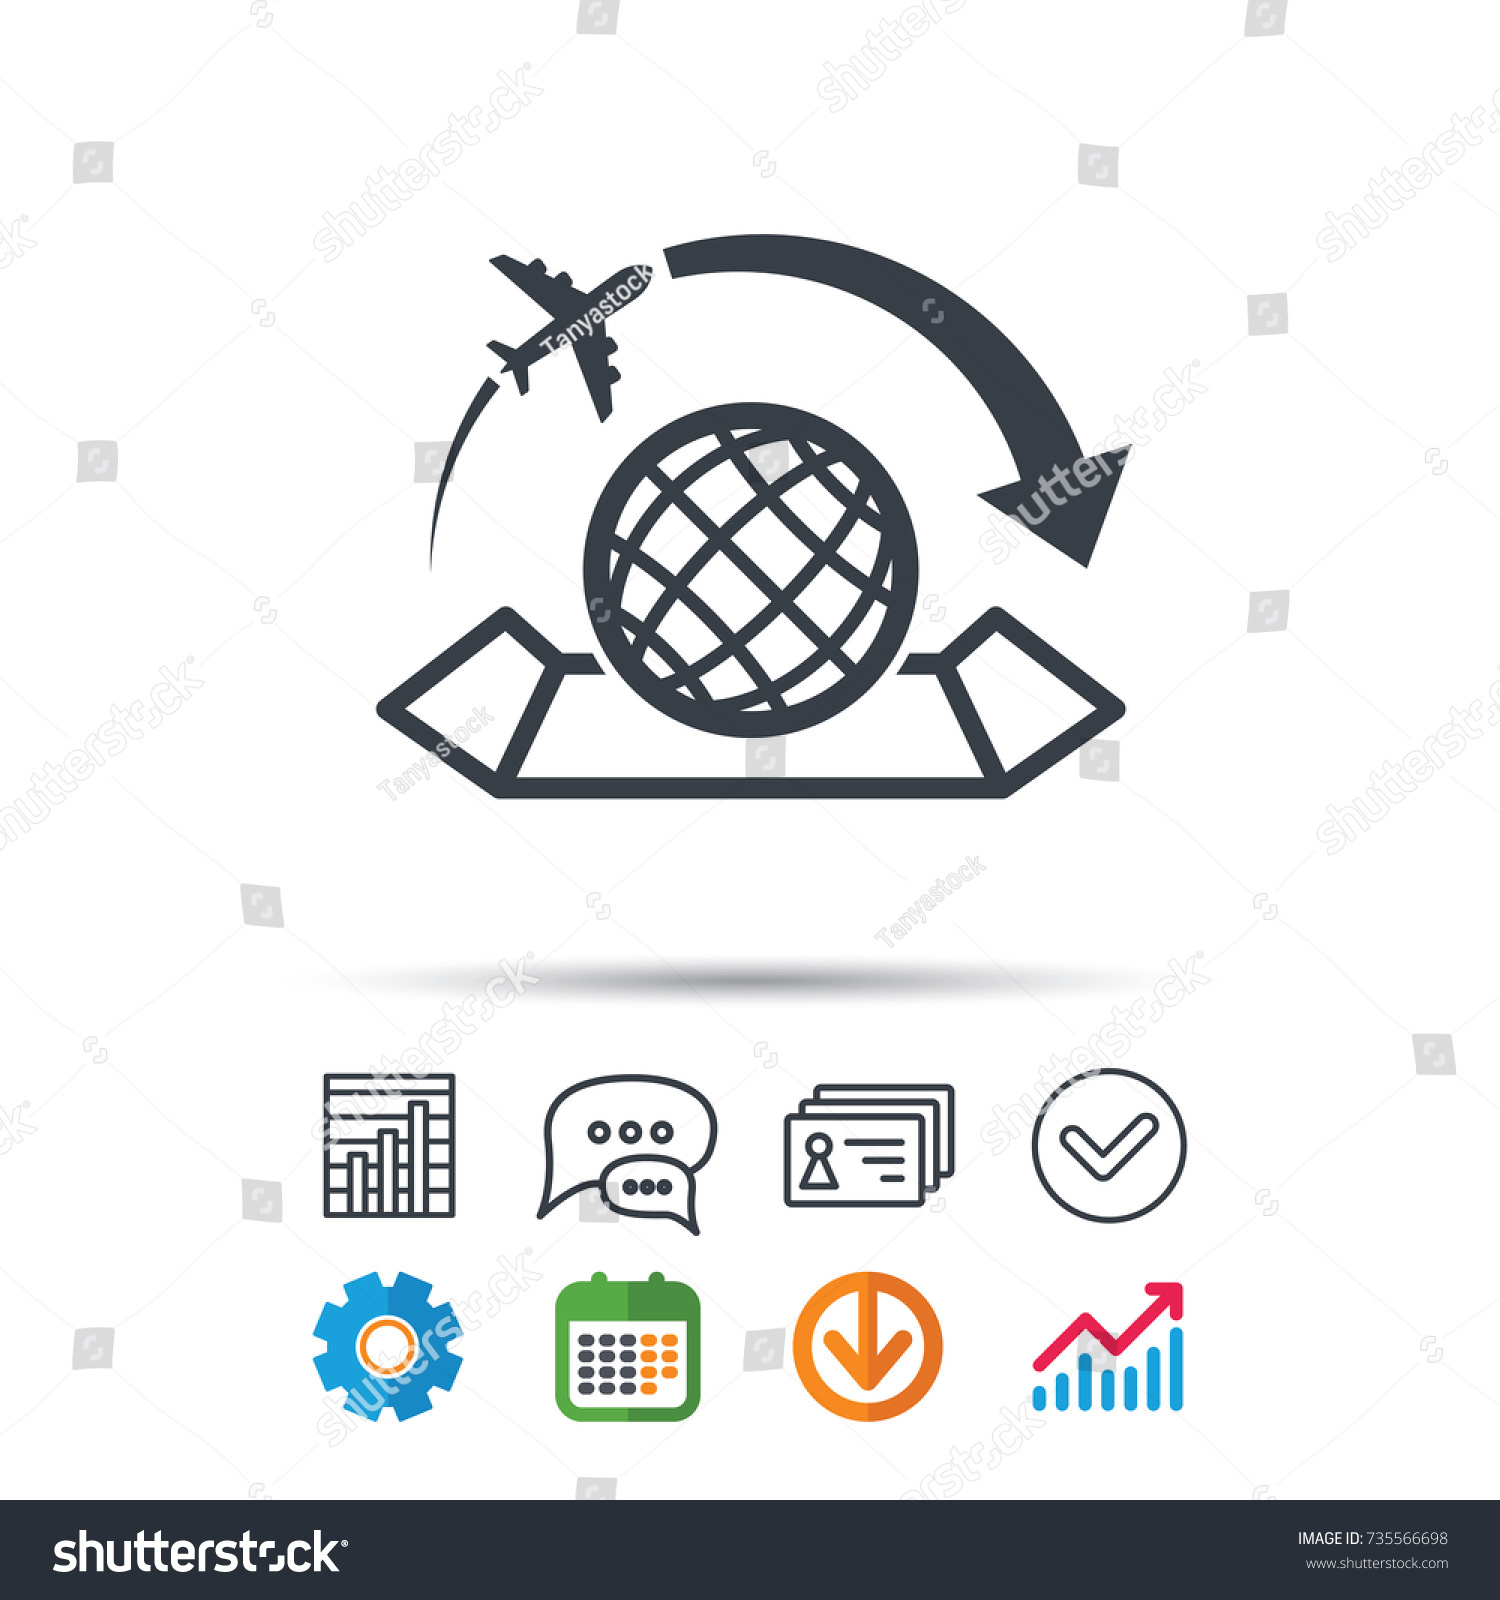 World map icon globe arrow sign stock vector 735566698 shutterstock world map icon globe with arrow sign plane travel symbol statistics chart gumiabroncs Image collections